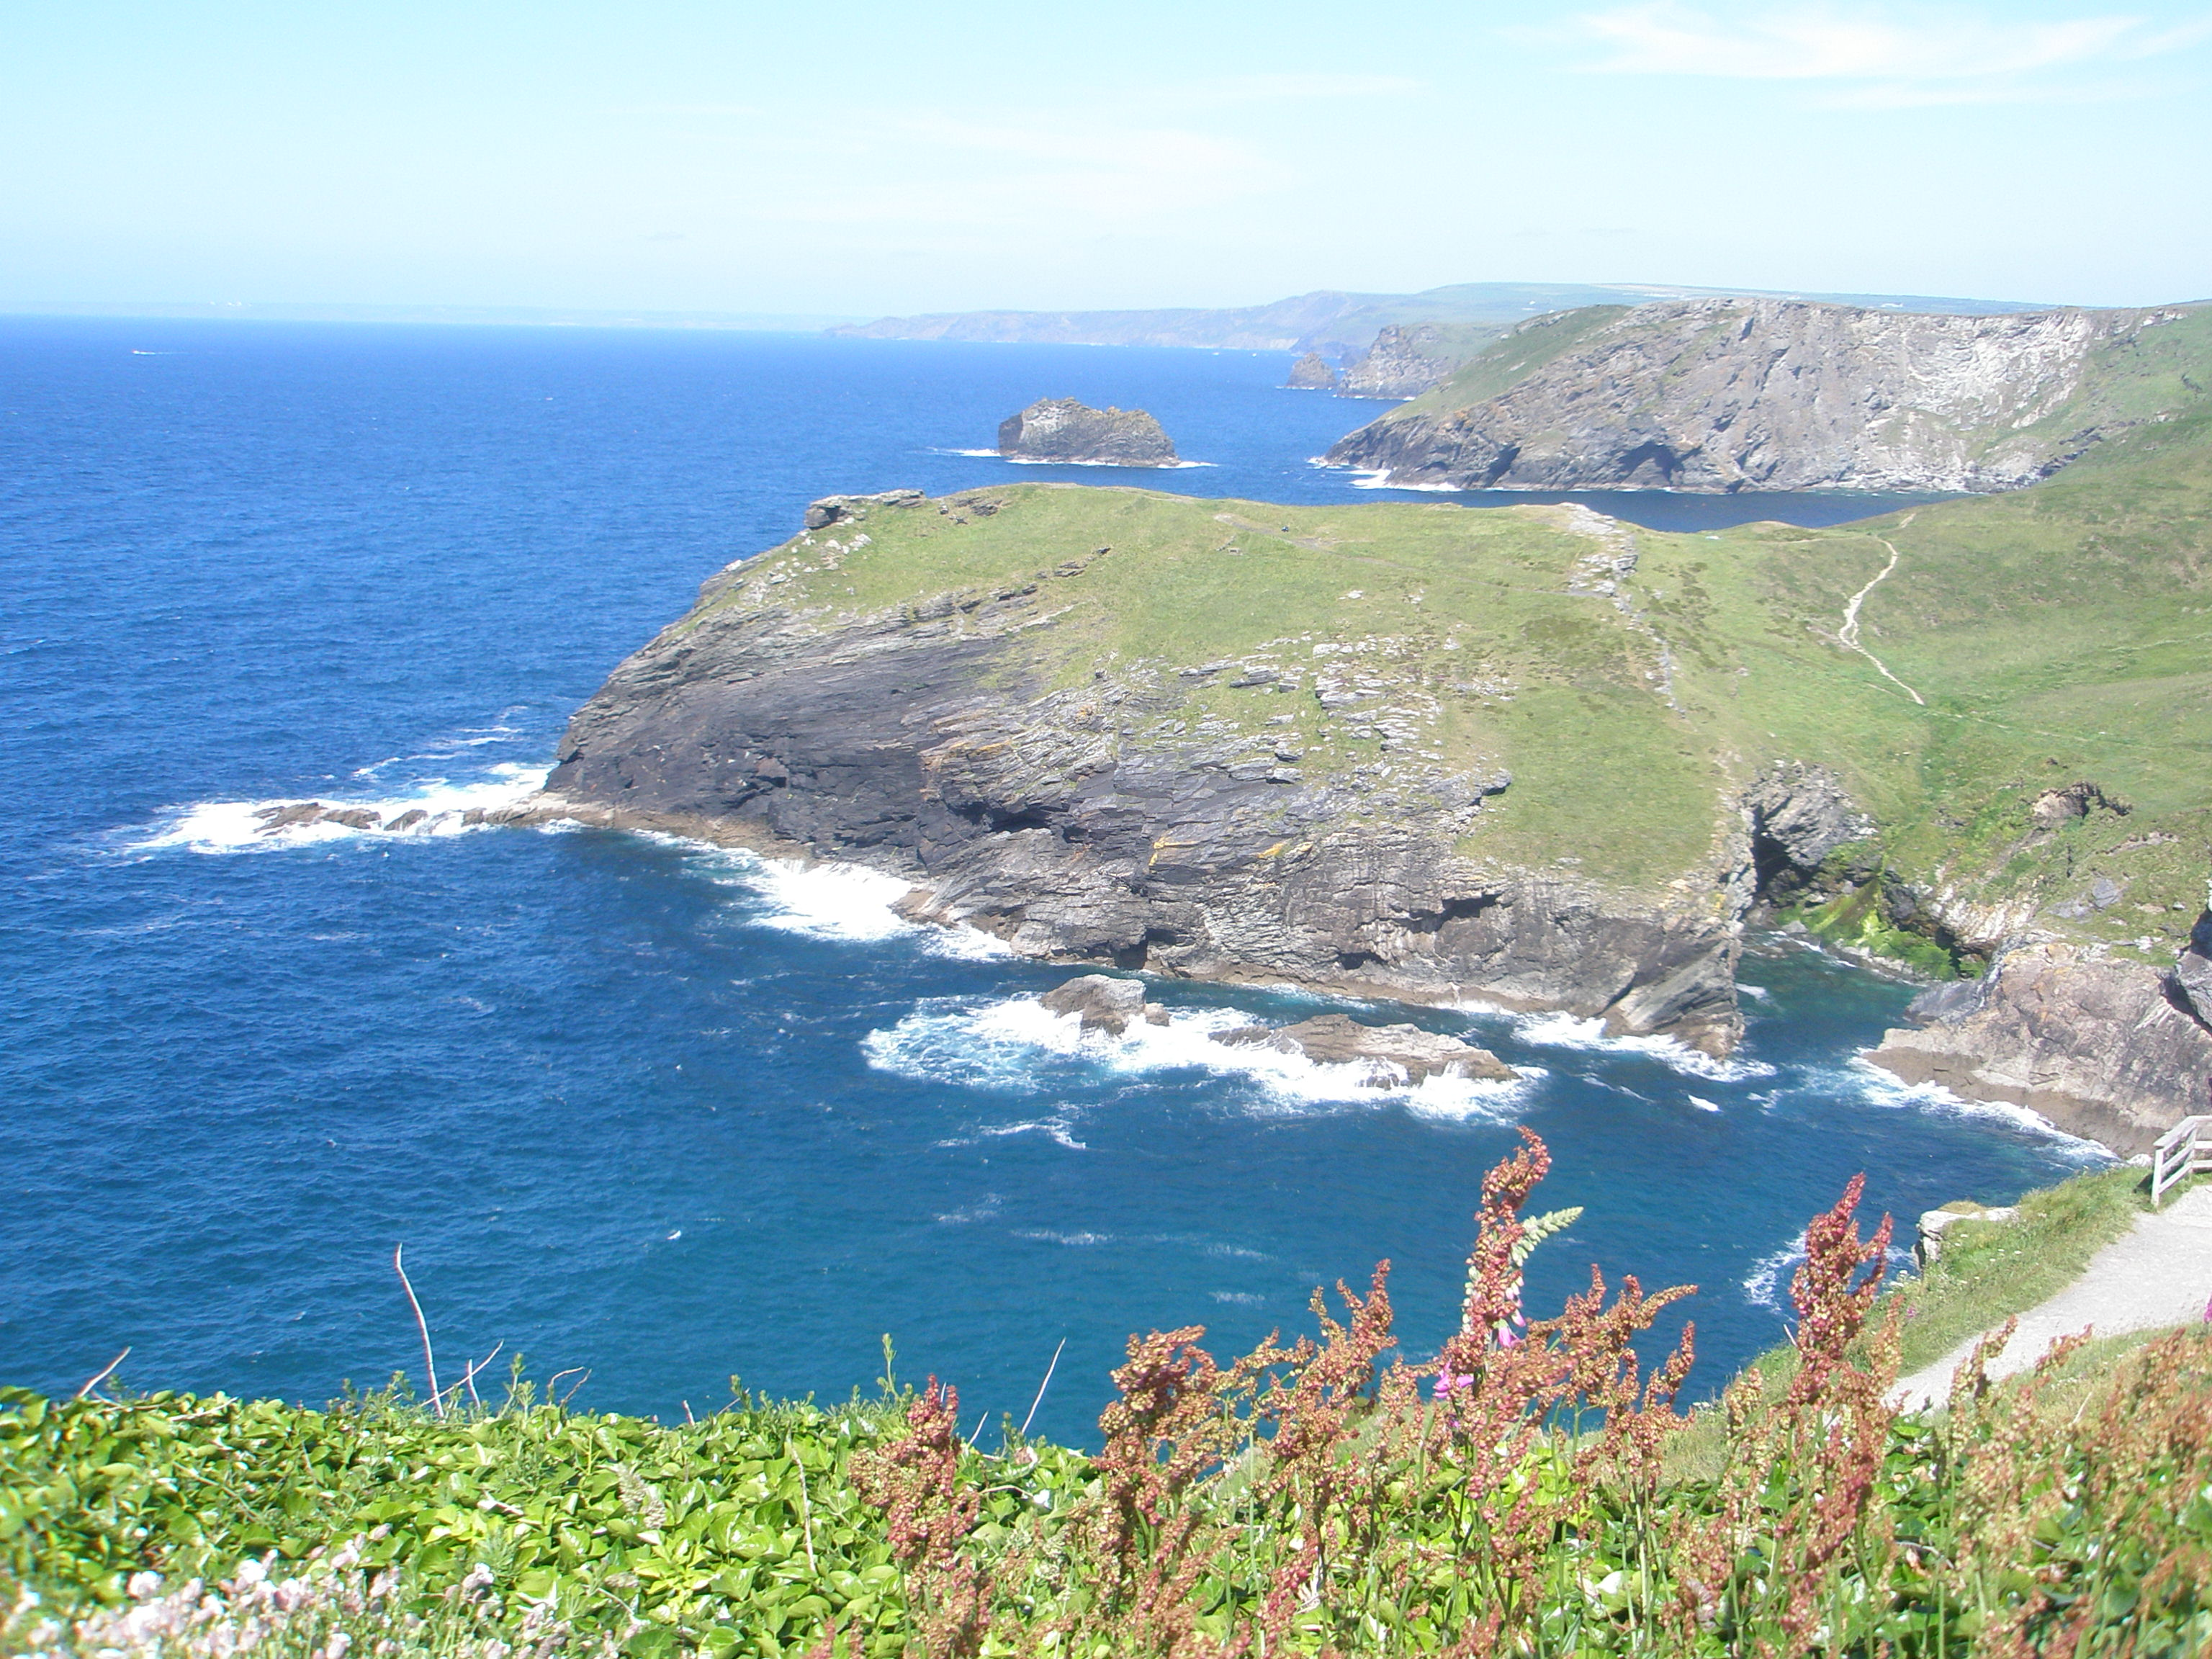 View of the Cornish coast from Tintagel Castle